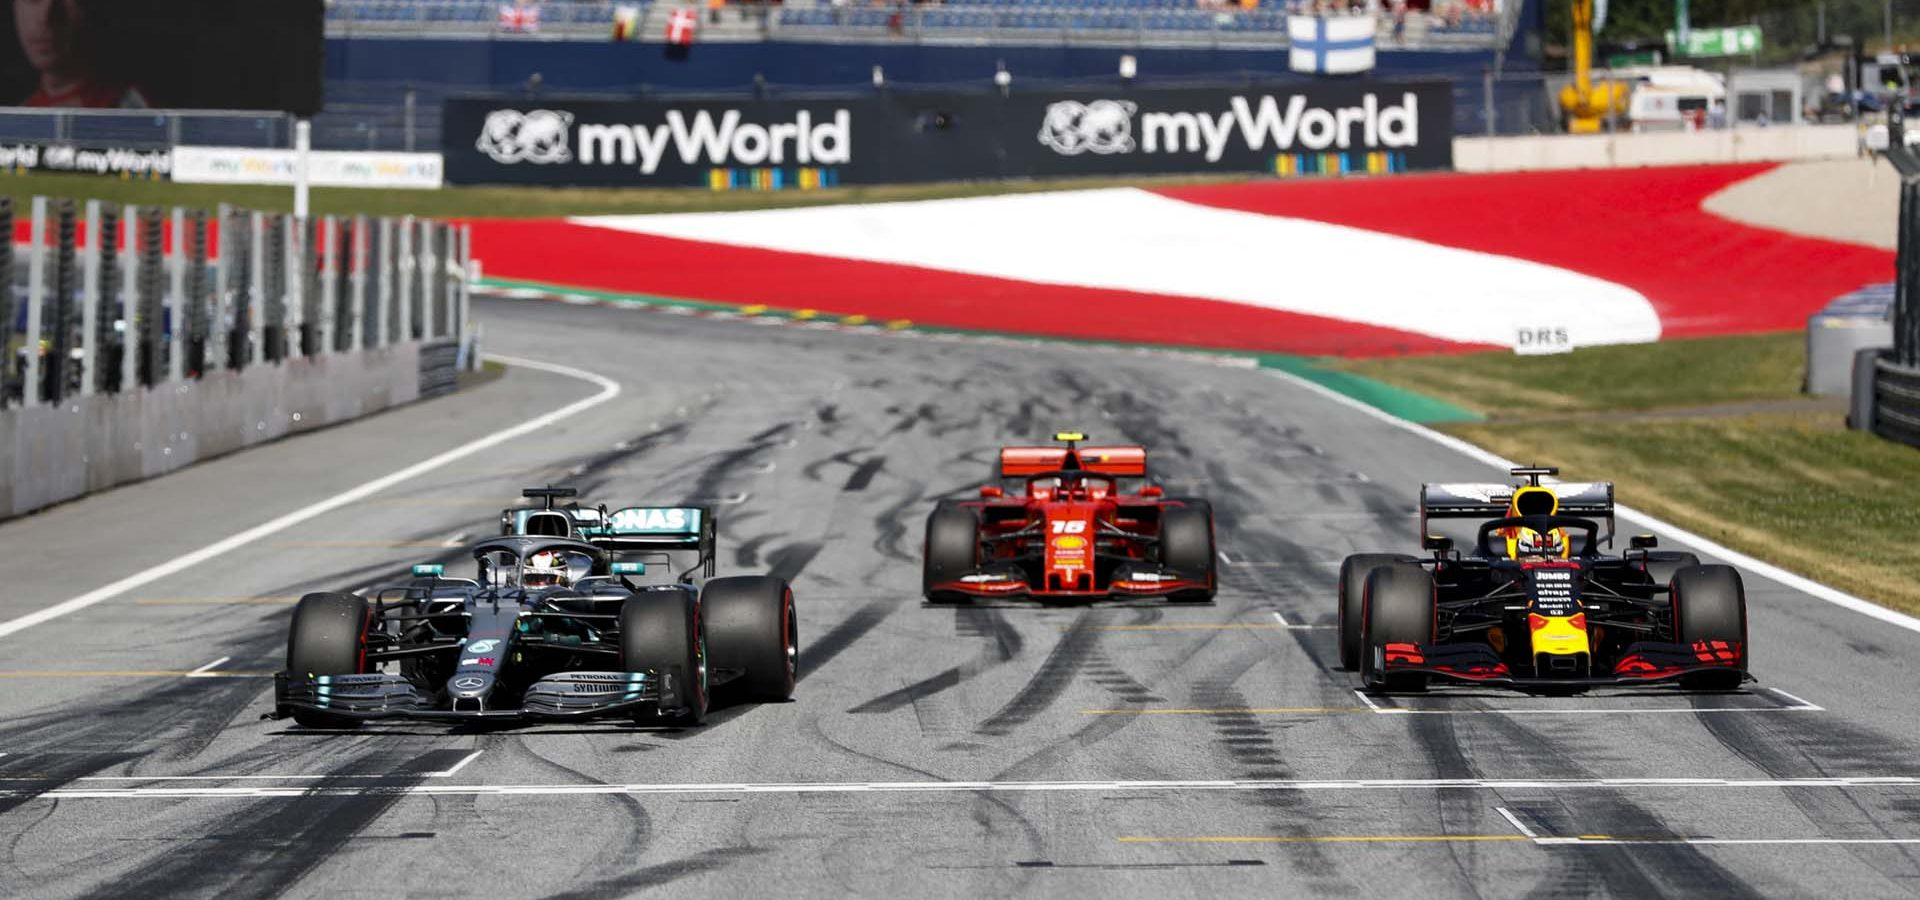 RED BULL RING, AUSTRIA - JUNE 29: Lewis Hamilton, Mercedes AMG F1 W10, Pole Sitter Charles Leclerc, Ferrari SF90 and Max Verstappen, Red Bull Racing RB15 driving into Parc Ferme during the Austrian GP at Red Bull Ring on June 29, 2019 in Red Bull Ring, Austria. (Photo by Steven Tee / LAT Images)